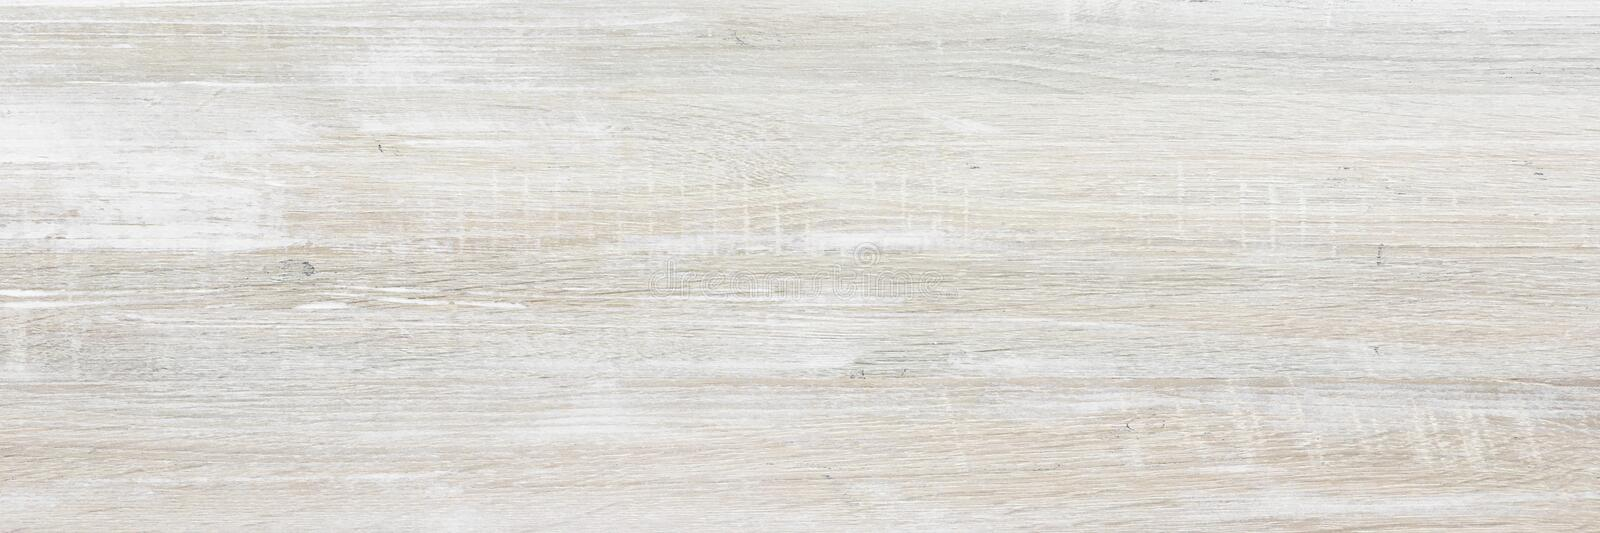 Wood brown background, light wooden abstract texture royalty free stock photos